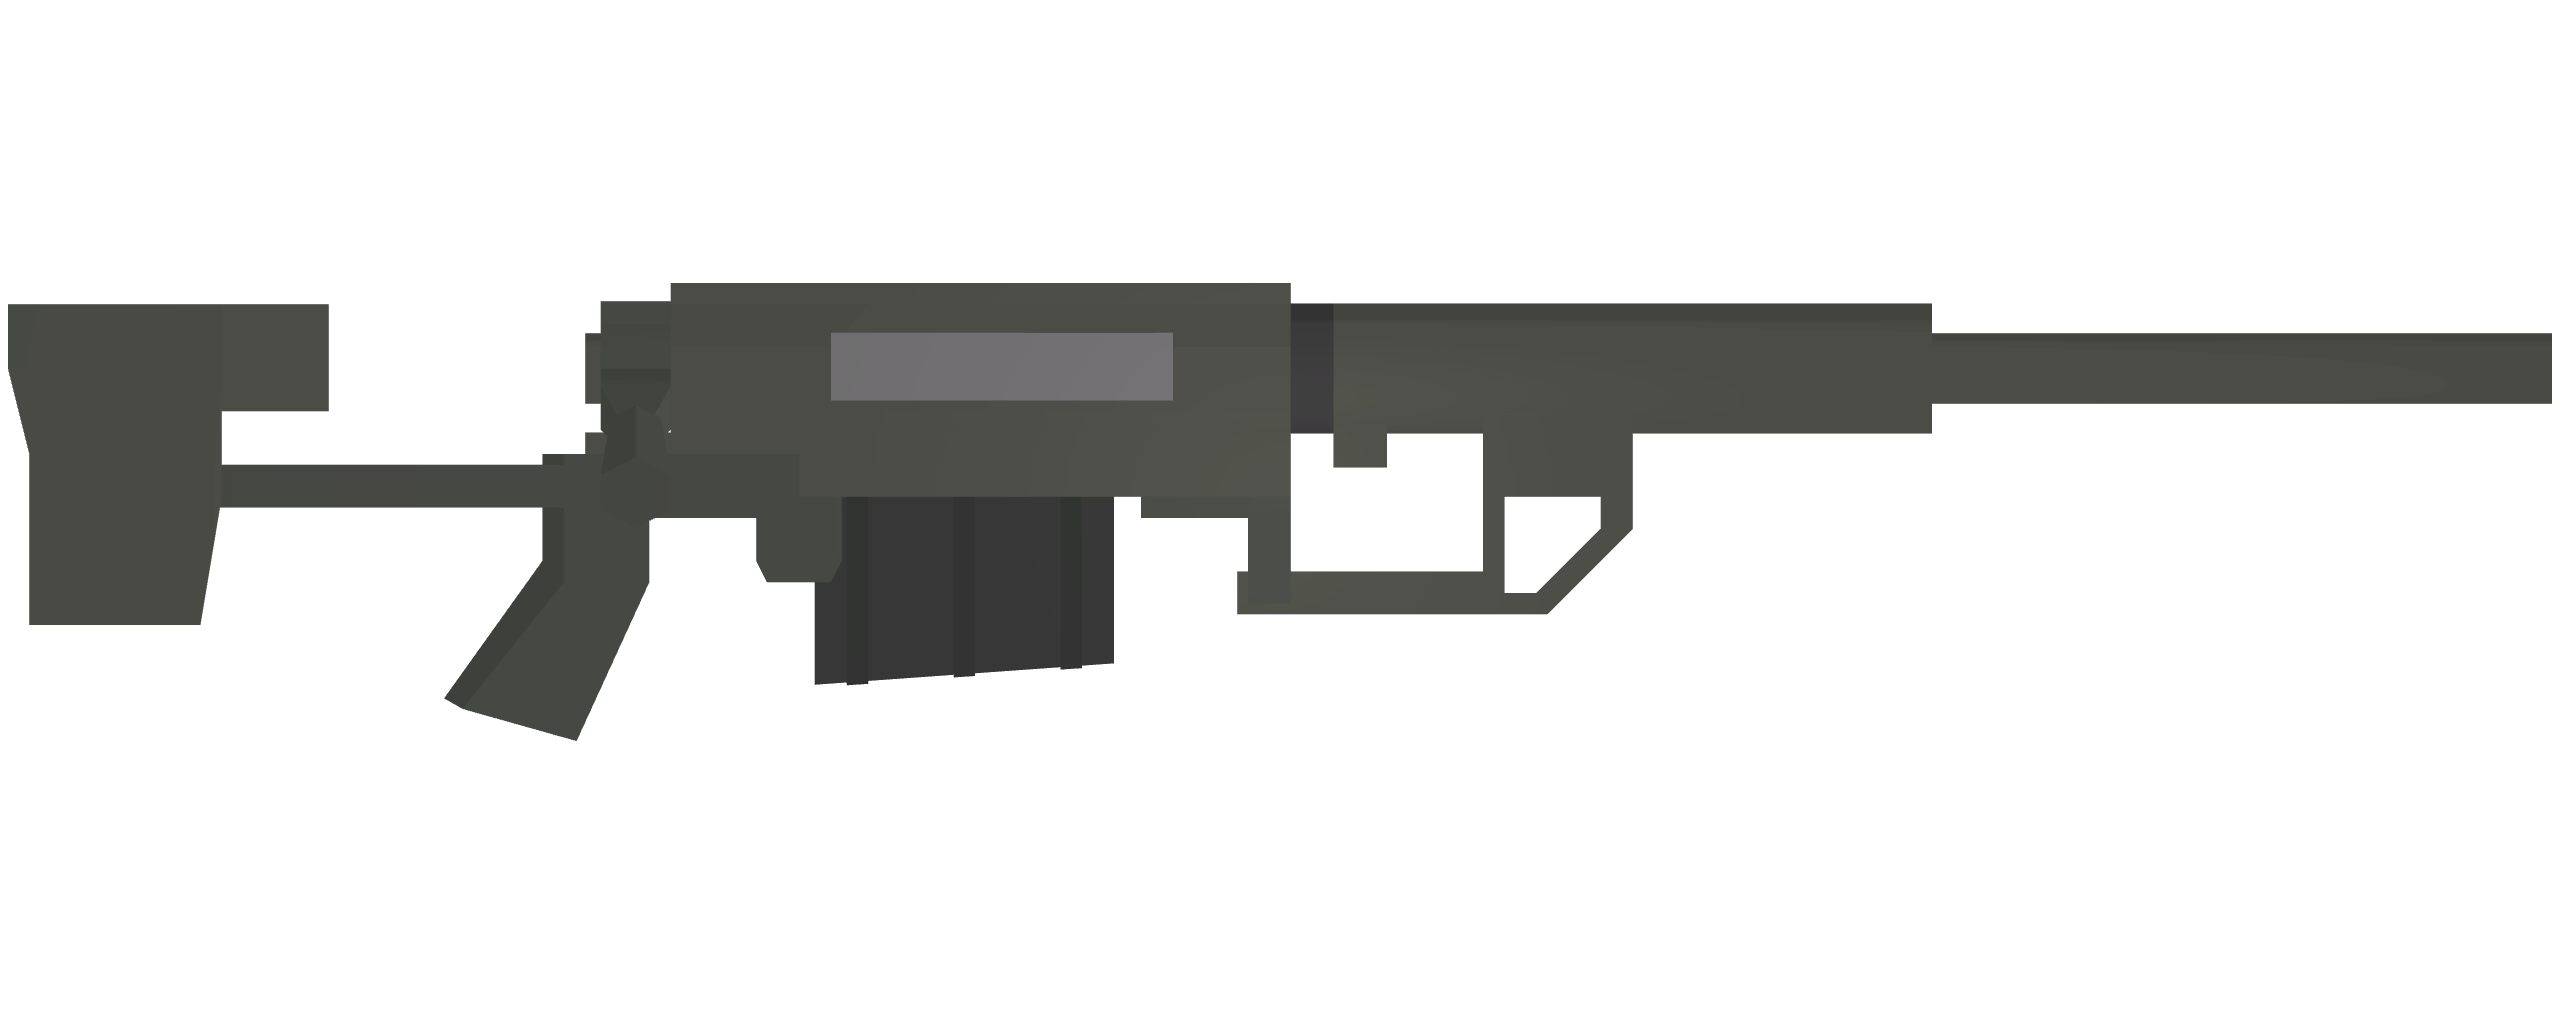 Unturned - All Weapons ID's for Uncreated Warfare Mods - USA Weapons - 9231A23